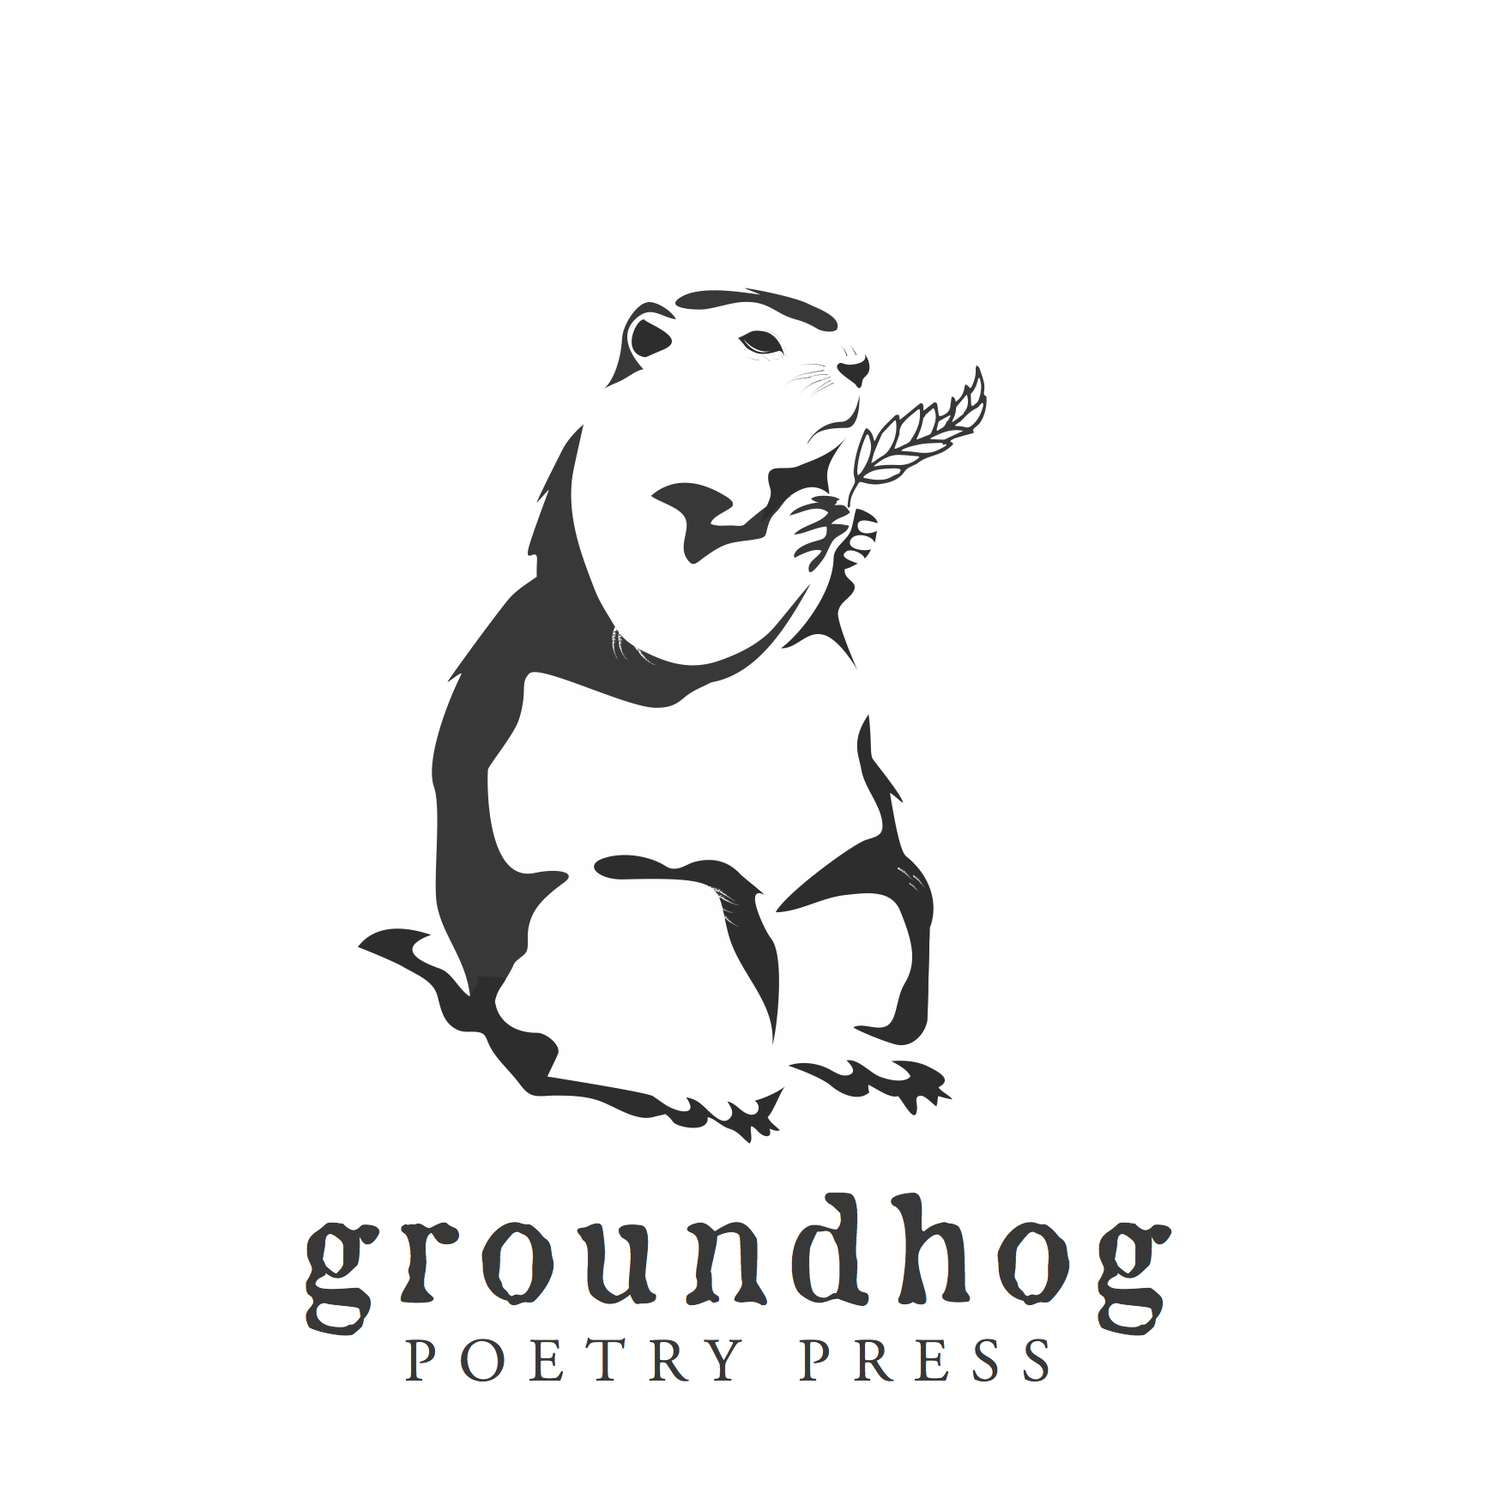 Groundhog Poetry Press LLC